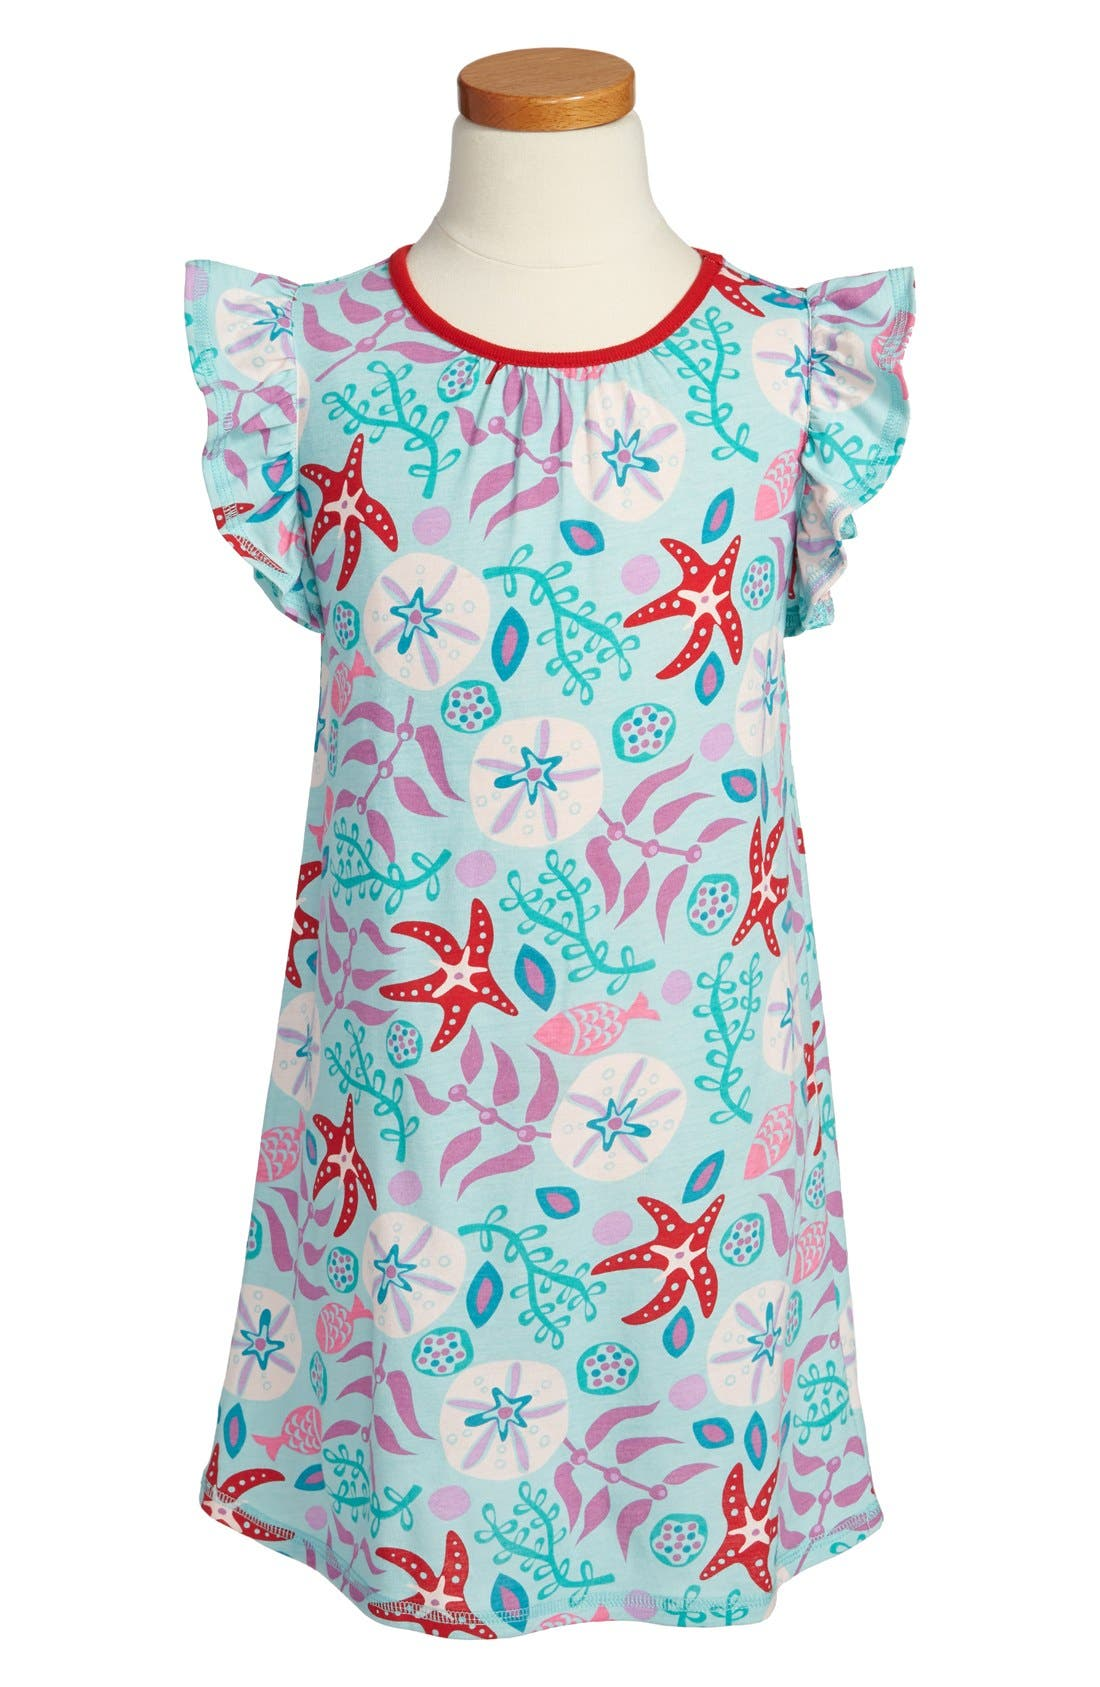 Main Image - Tea Collection 'Sea Life' Nightgown (Little Girls & Big Girls)